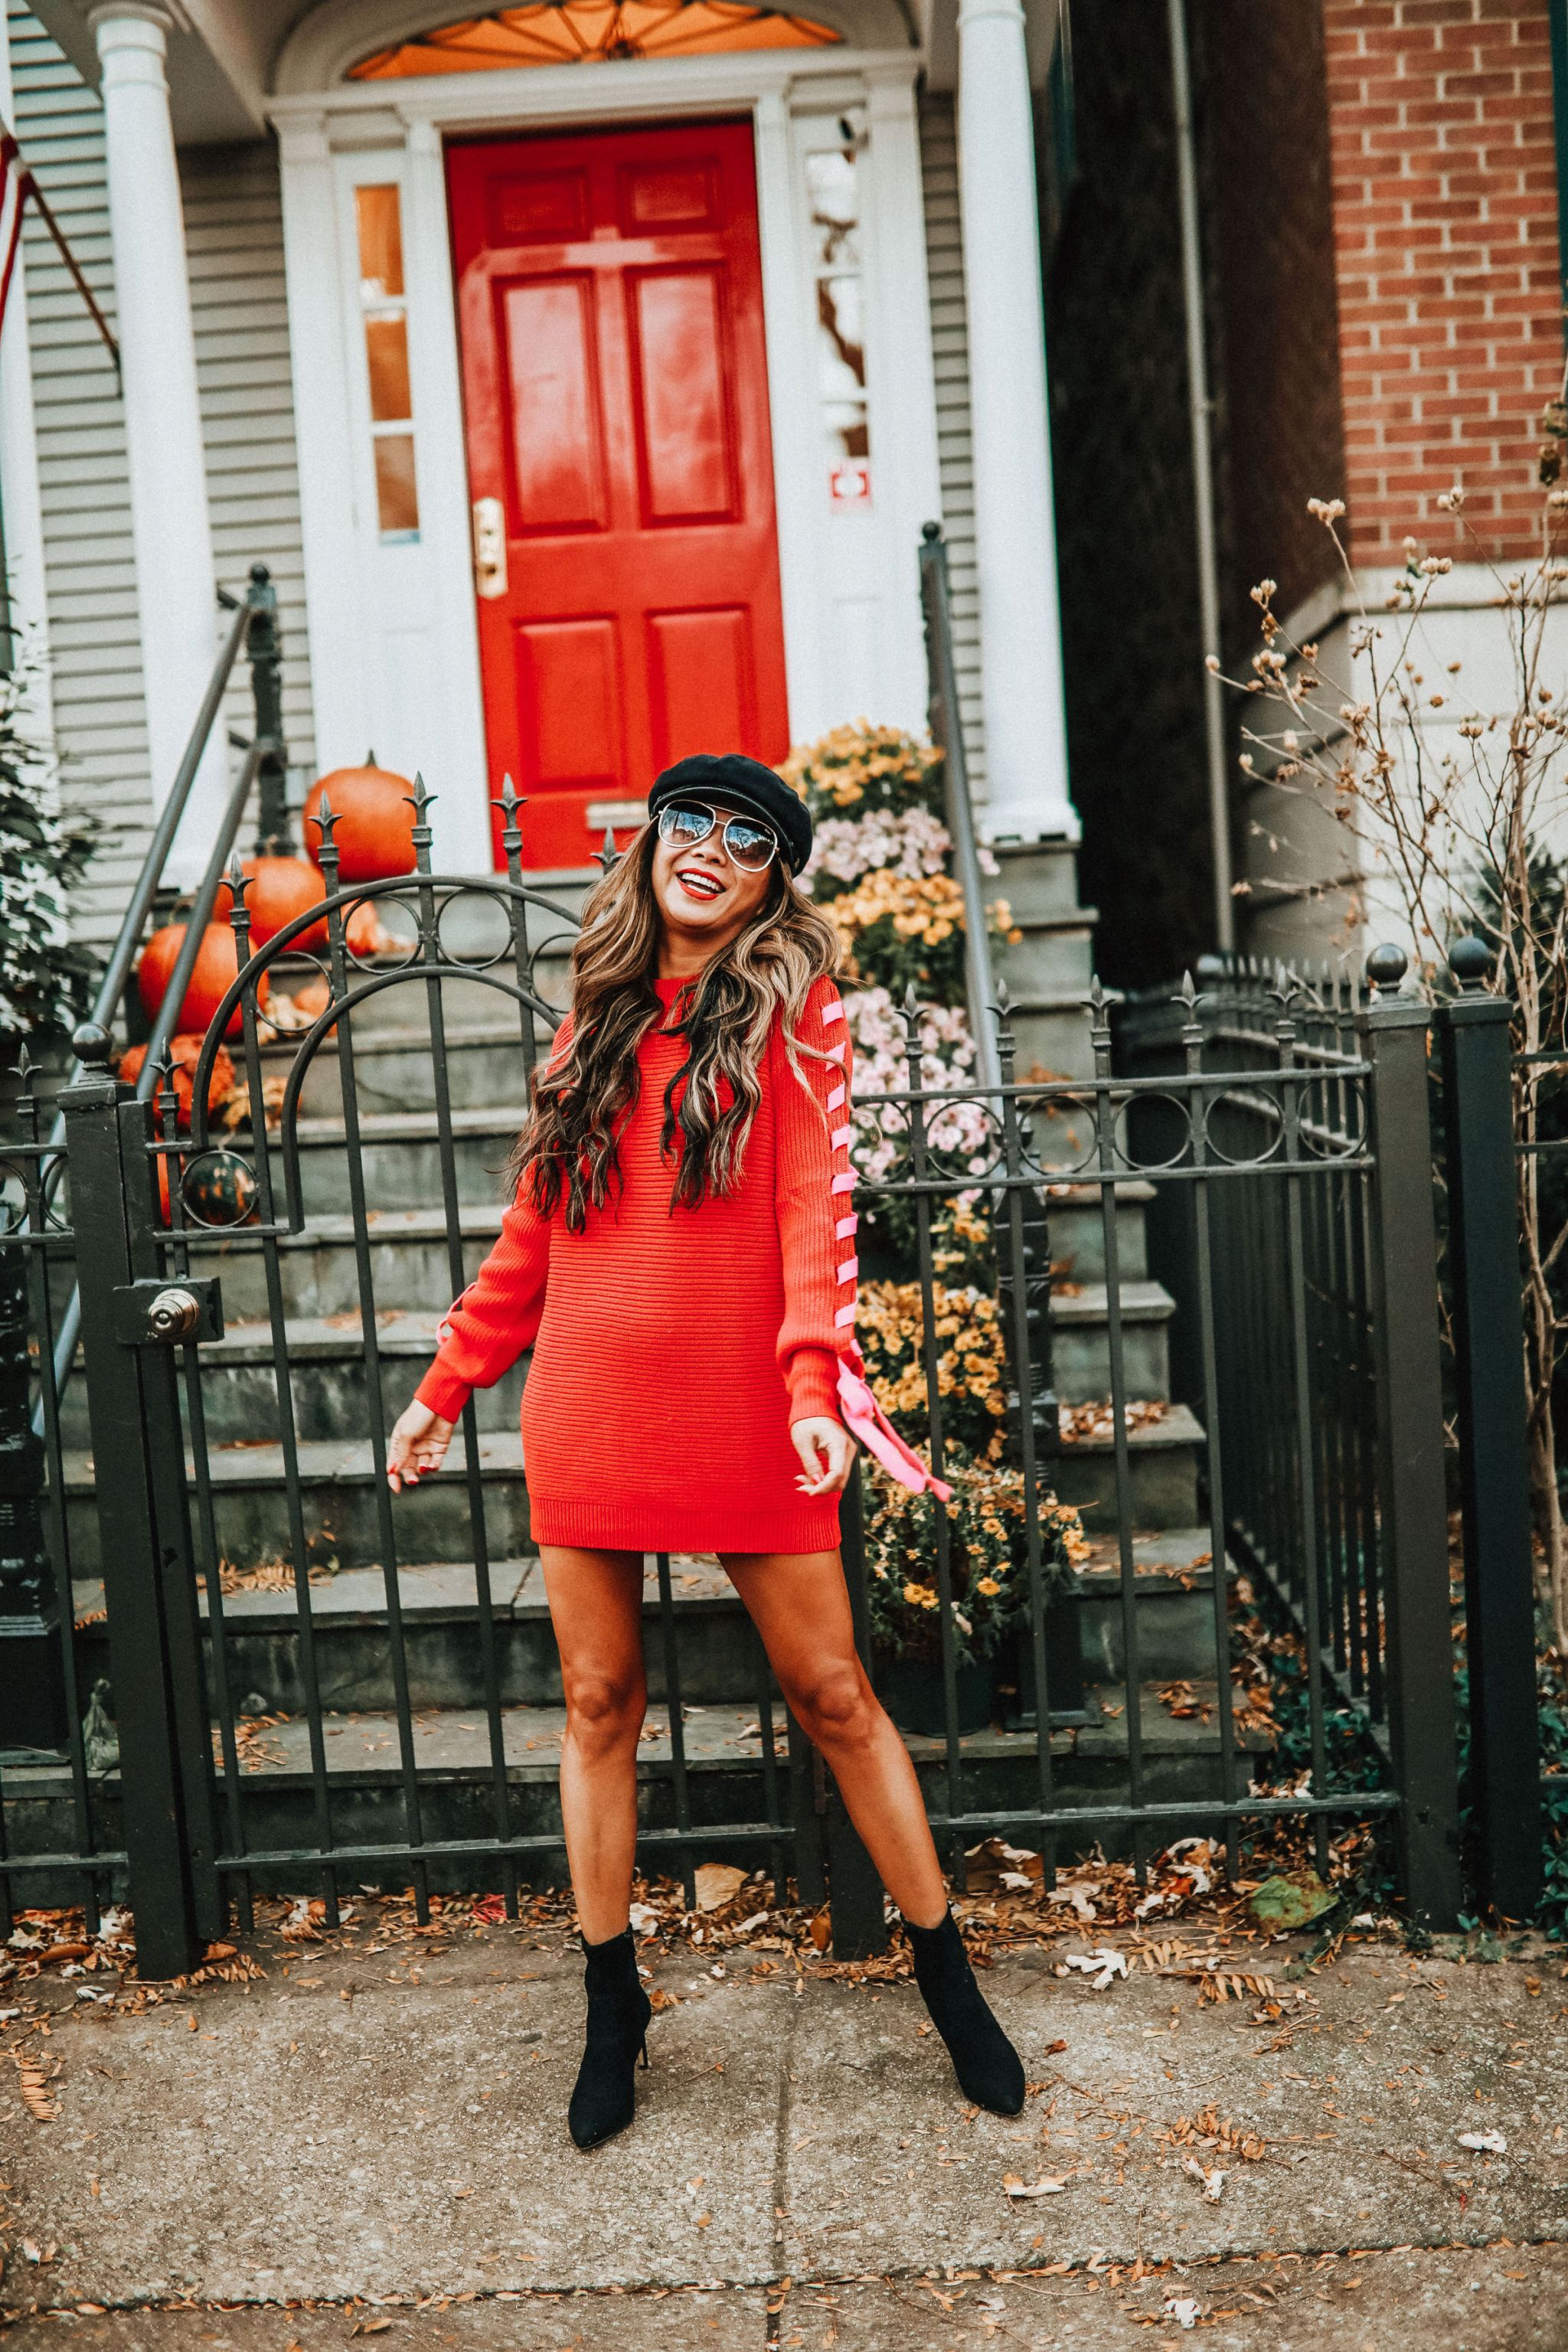 Jennifer Worman, Madison Sweater Dress, Revolve Sweater Dress, How to style a sweater dress, Holiday red sweater dress, Chicago holiday style, Chicago Style Blogger, Jennifer Worman